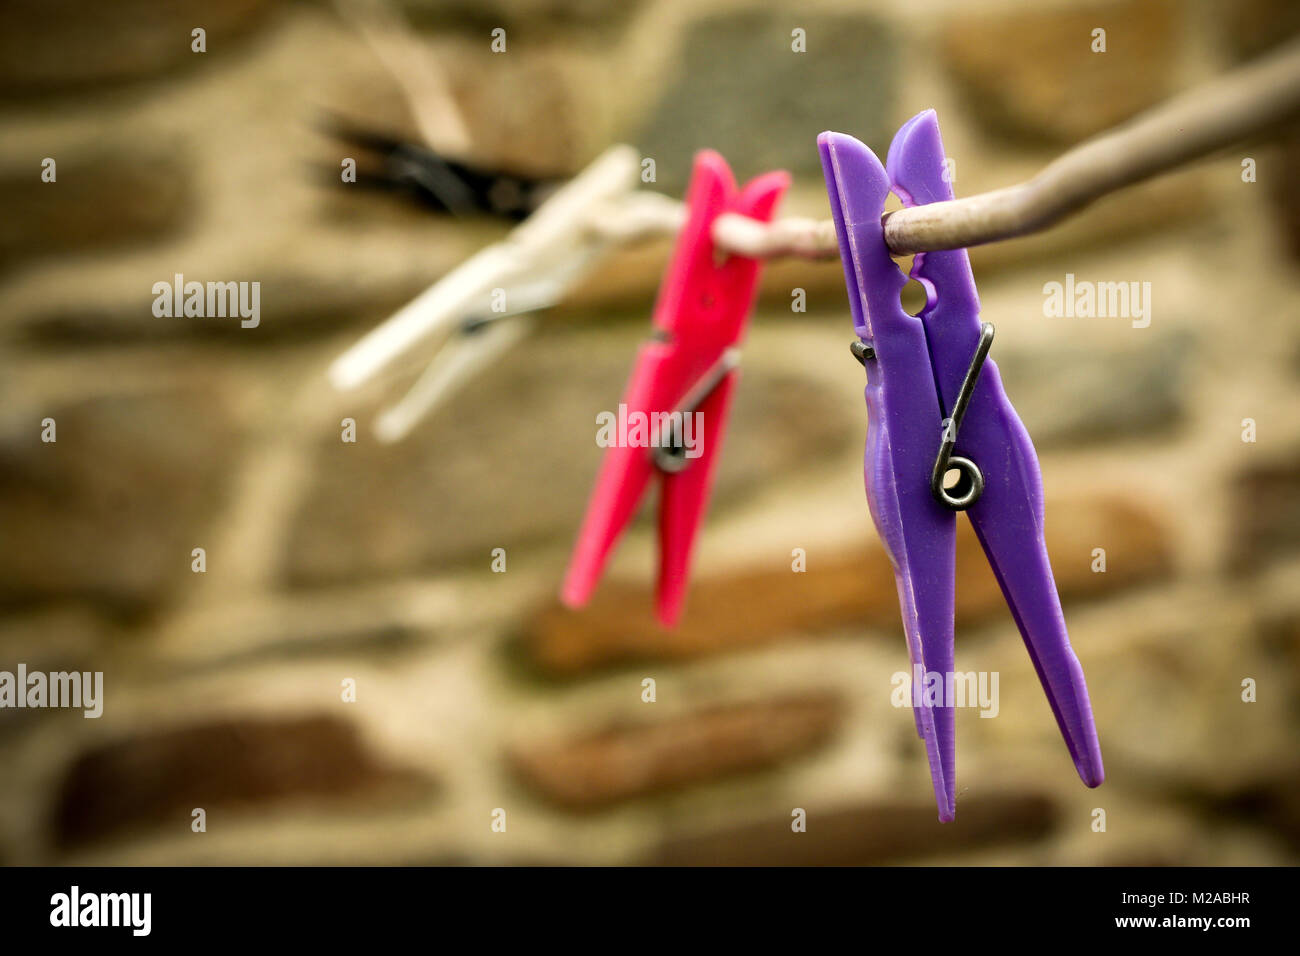 A detail of colorful clothes pegs on a line. - Stock Image